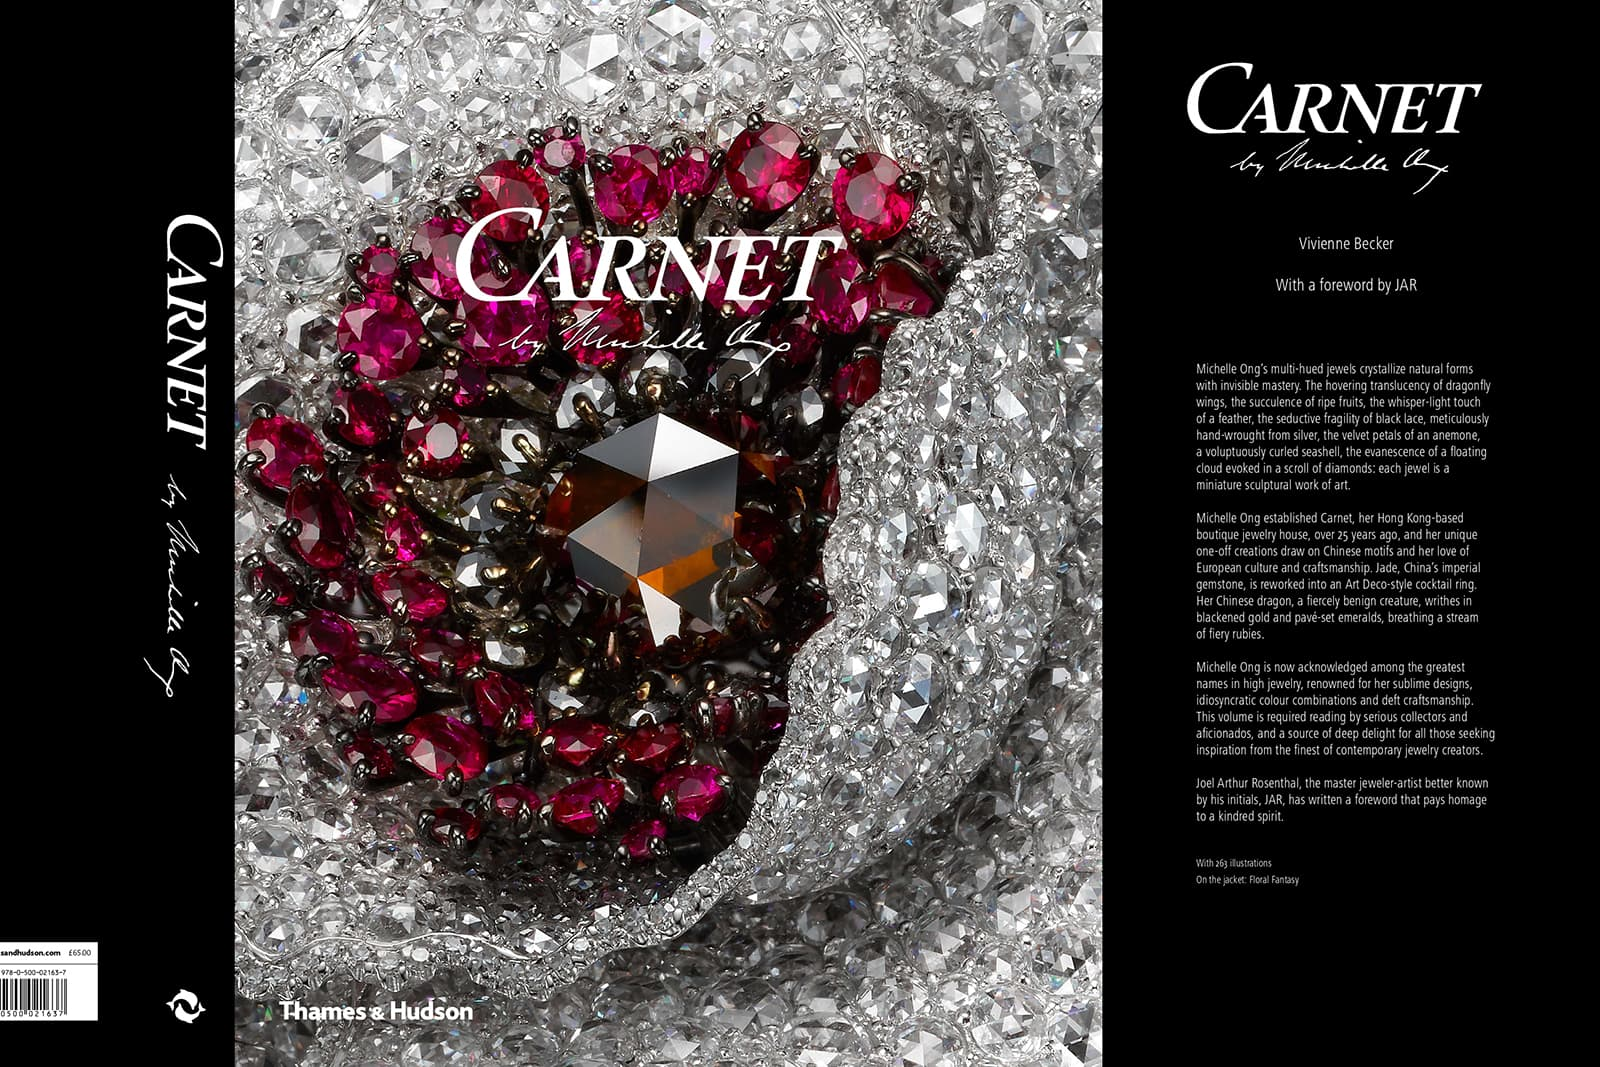 'Carnet by Michelle Ong' book by Vivienne Becker